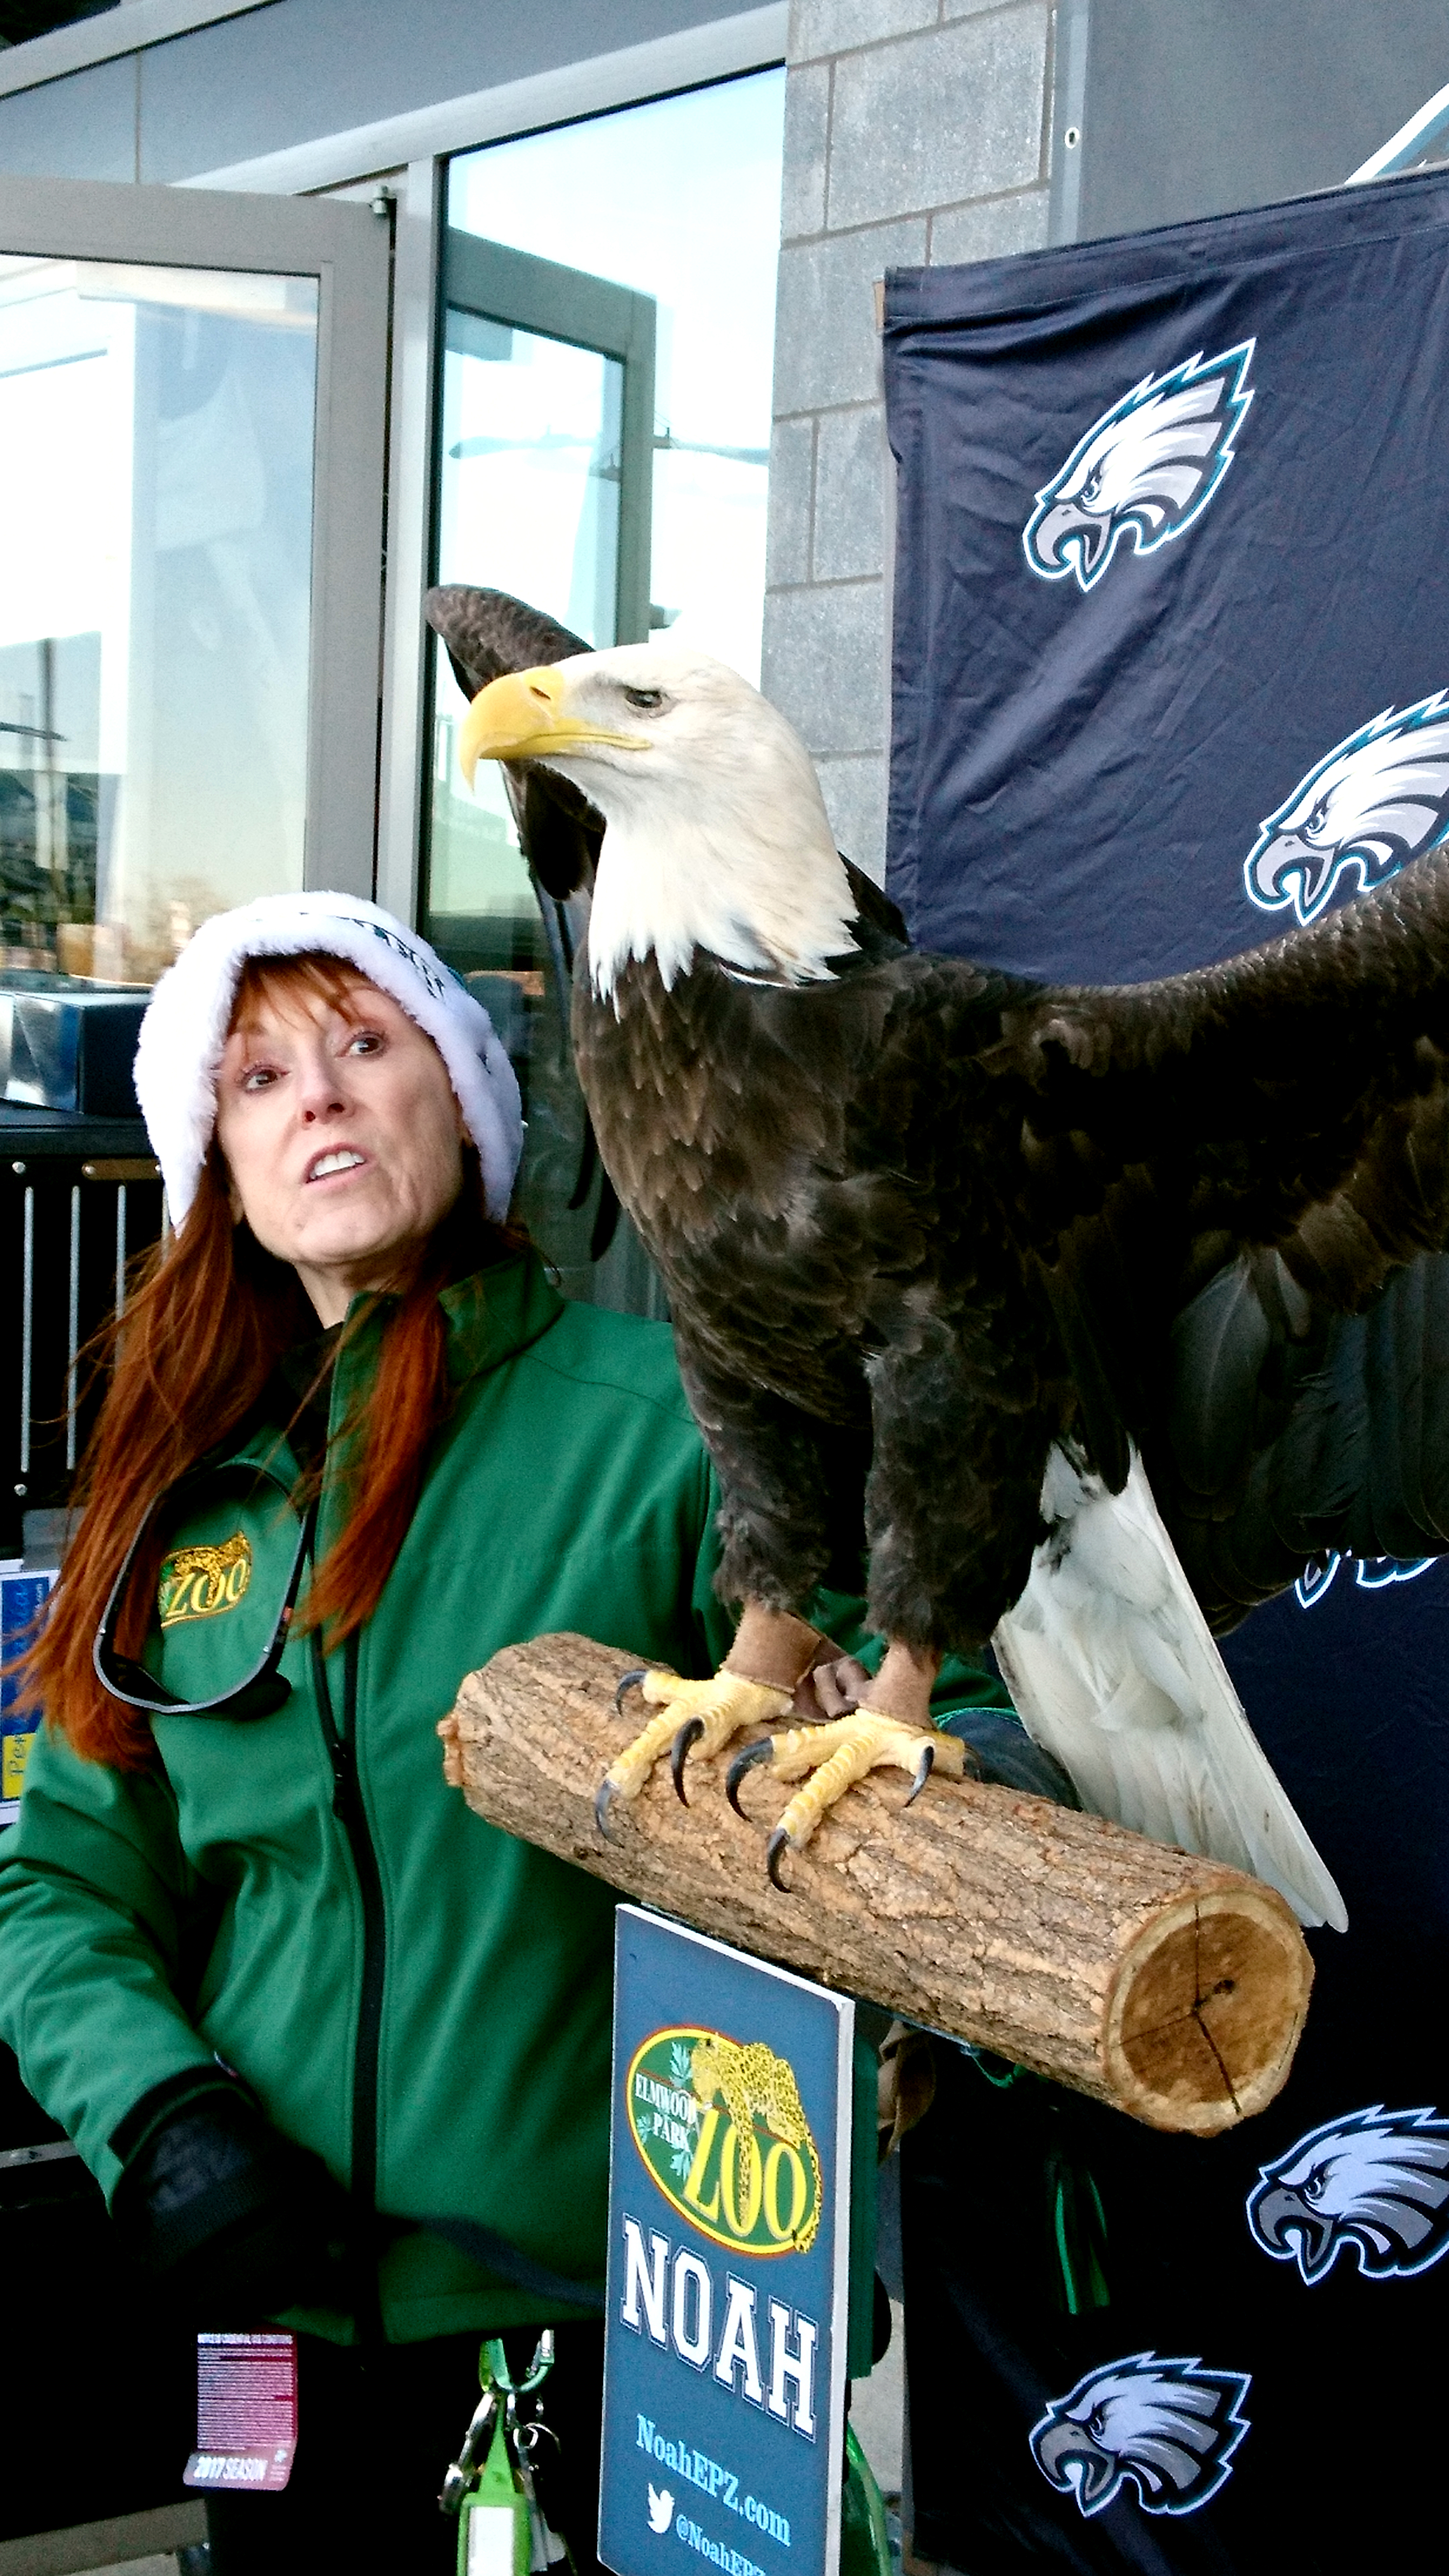 Bald headed eagle utanför Lincoln Financial Field. Foto: John Andersson.